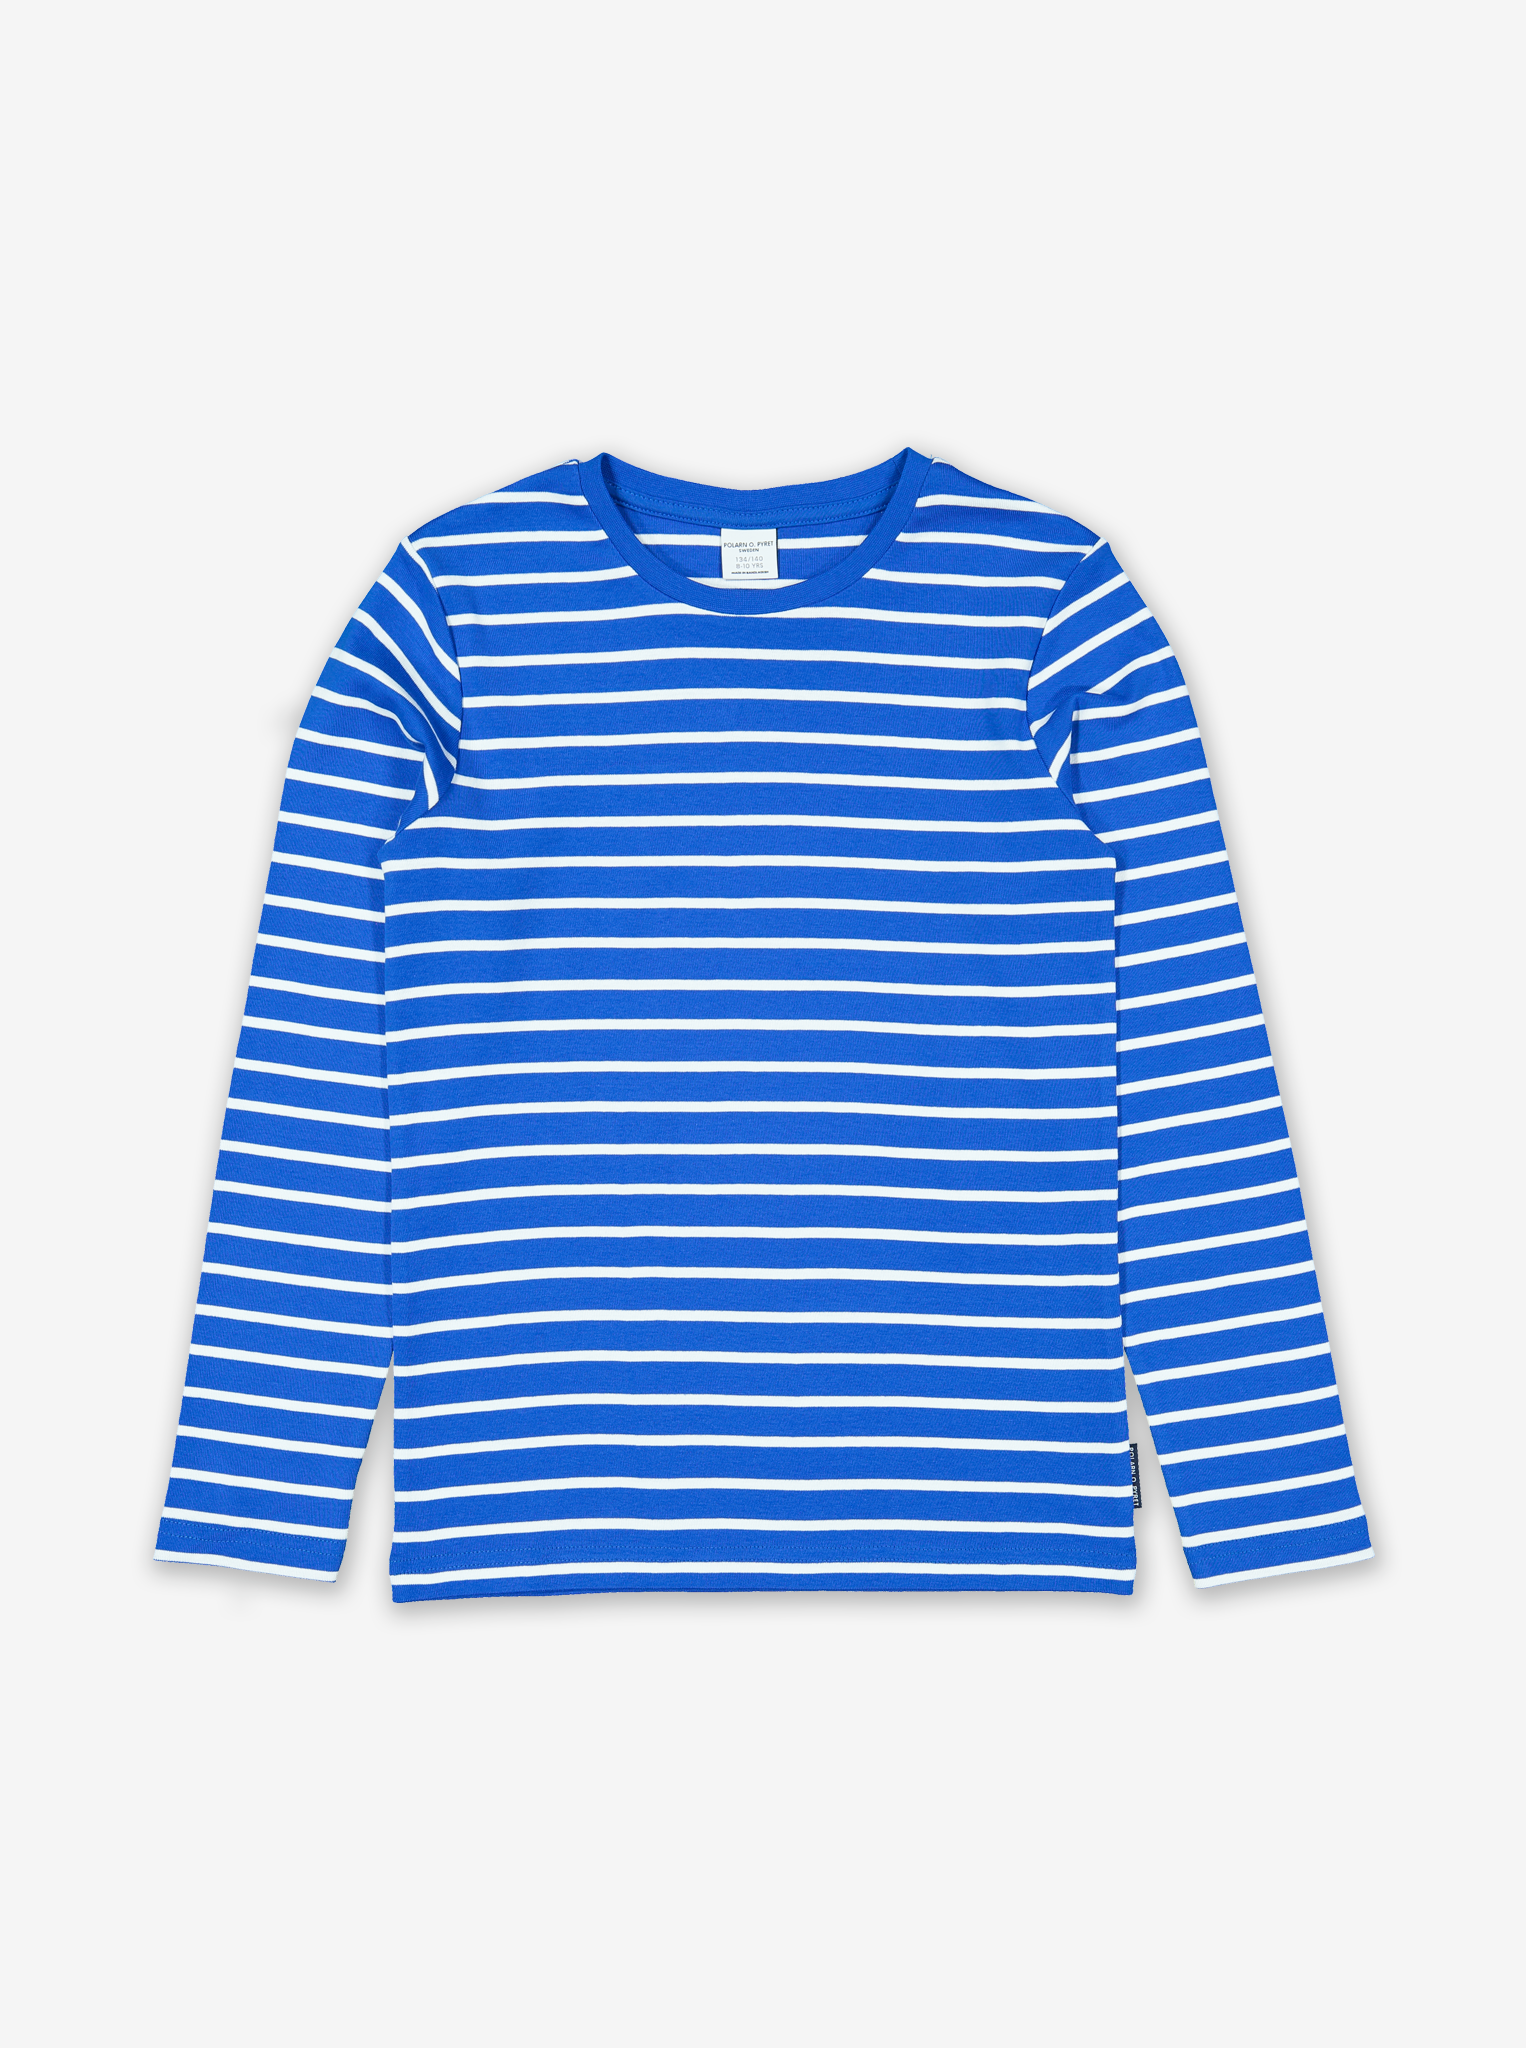 Striped Kids Top-Unisex-6-12y-Blue